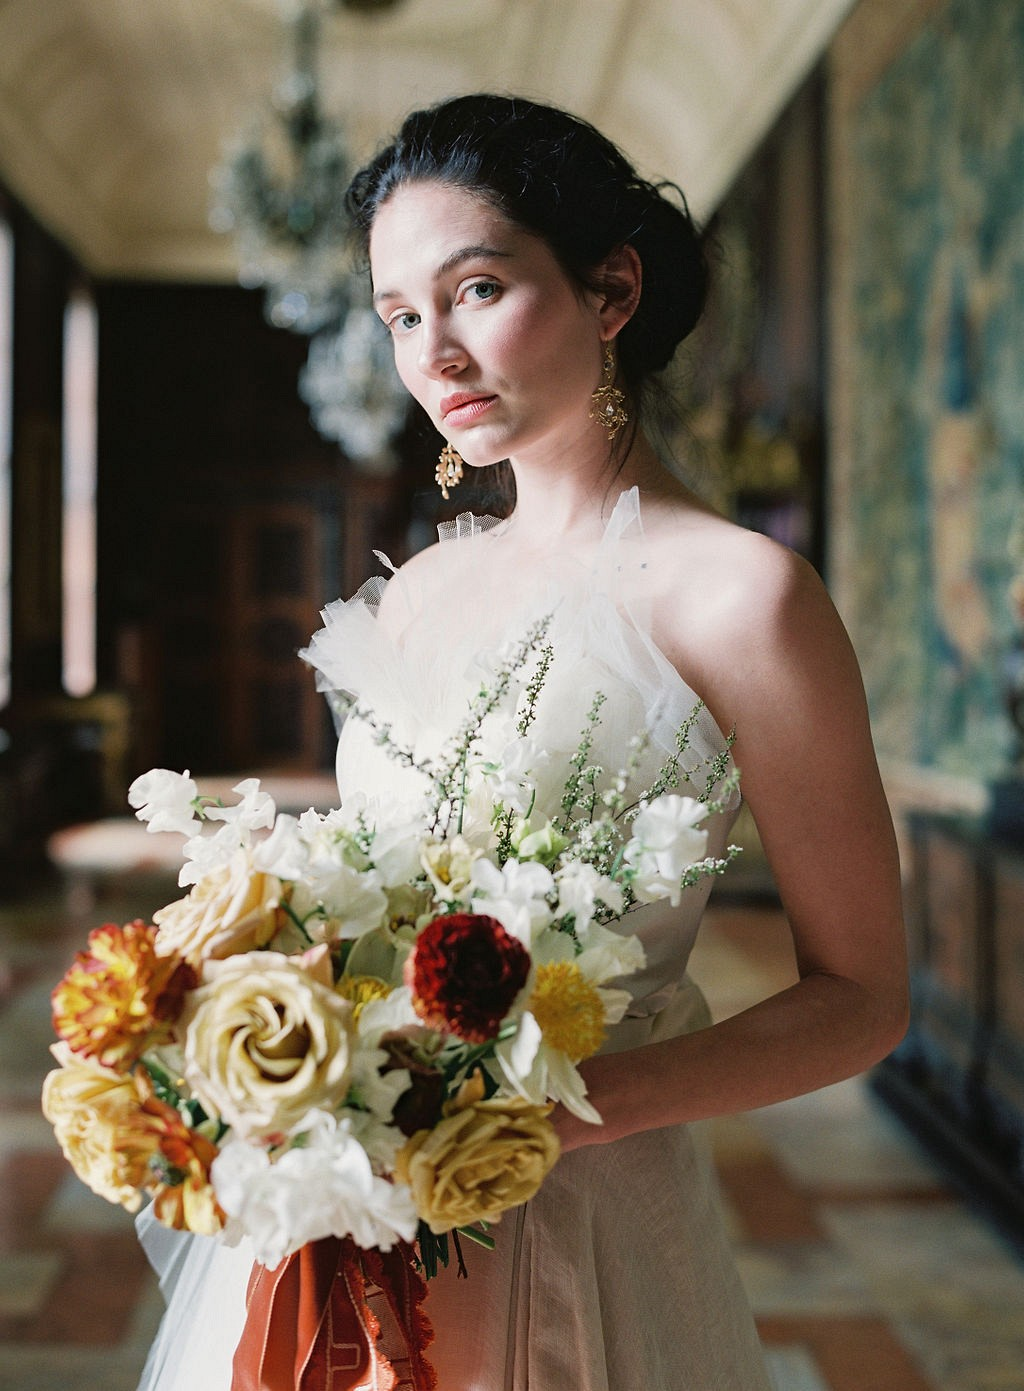 How to match your wedding bouquet to your dress